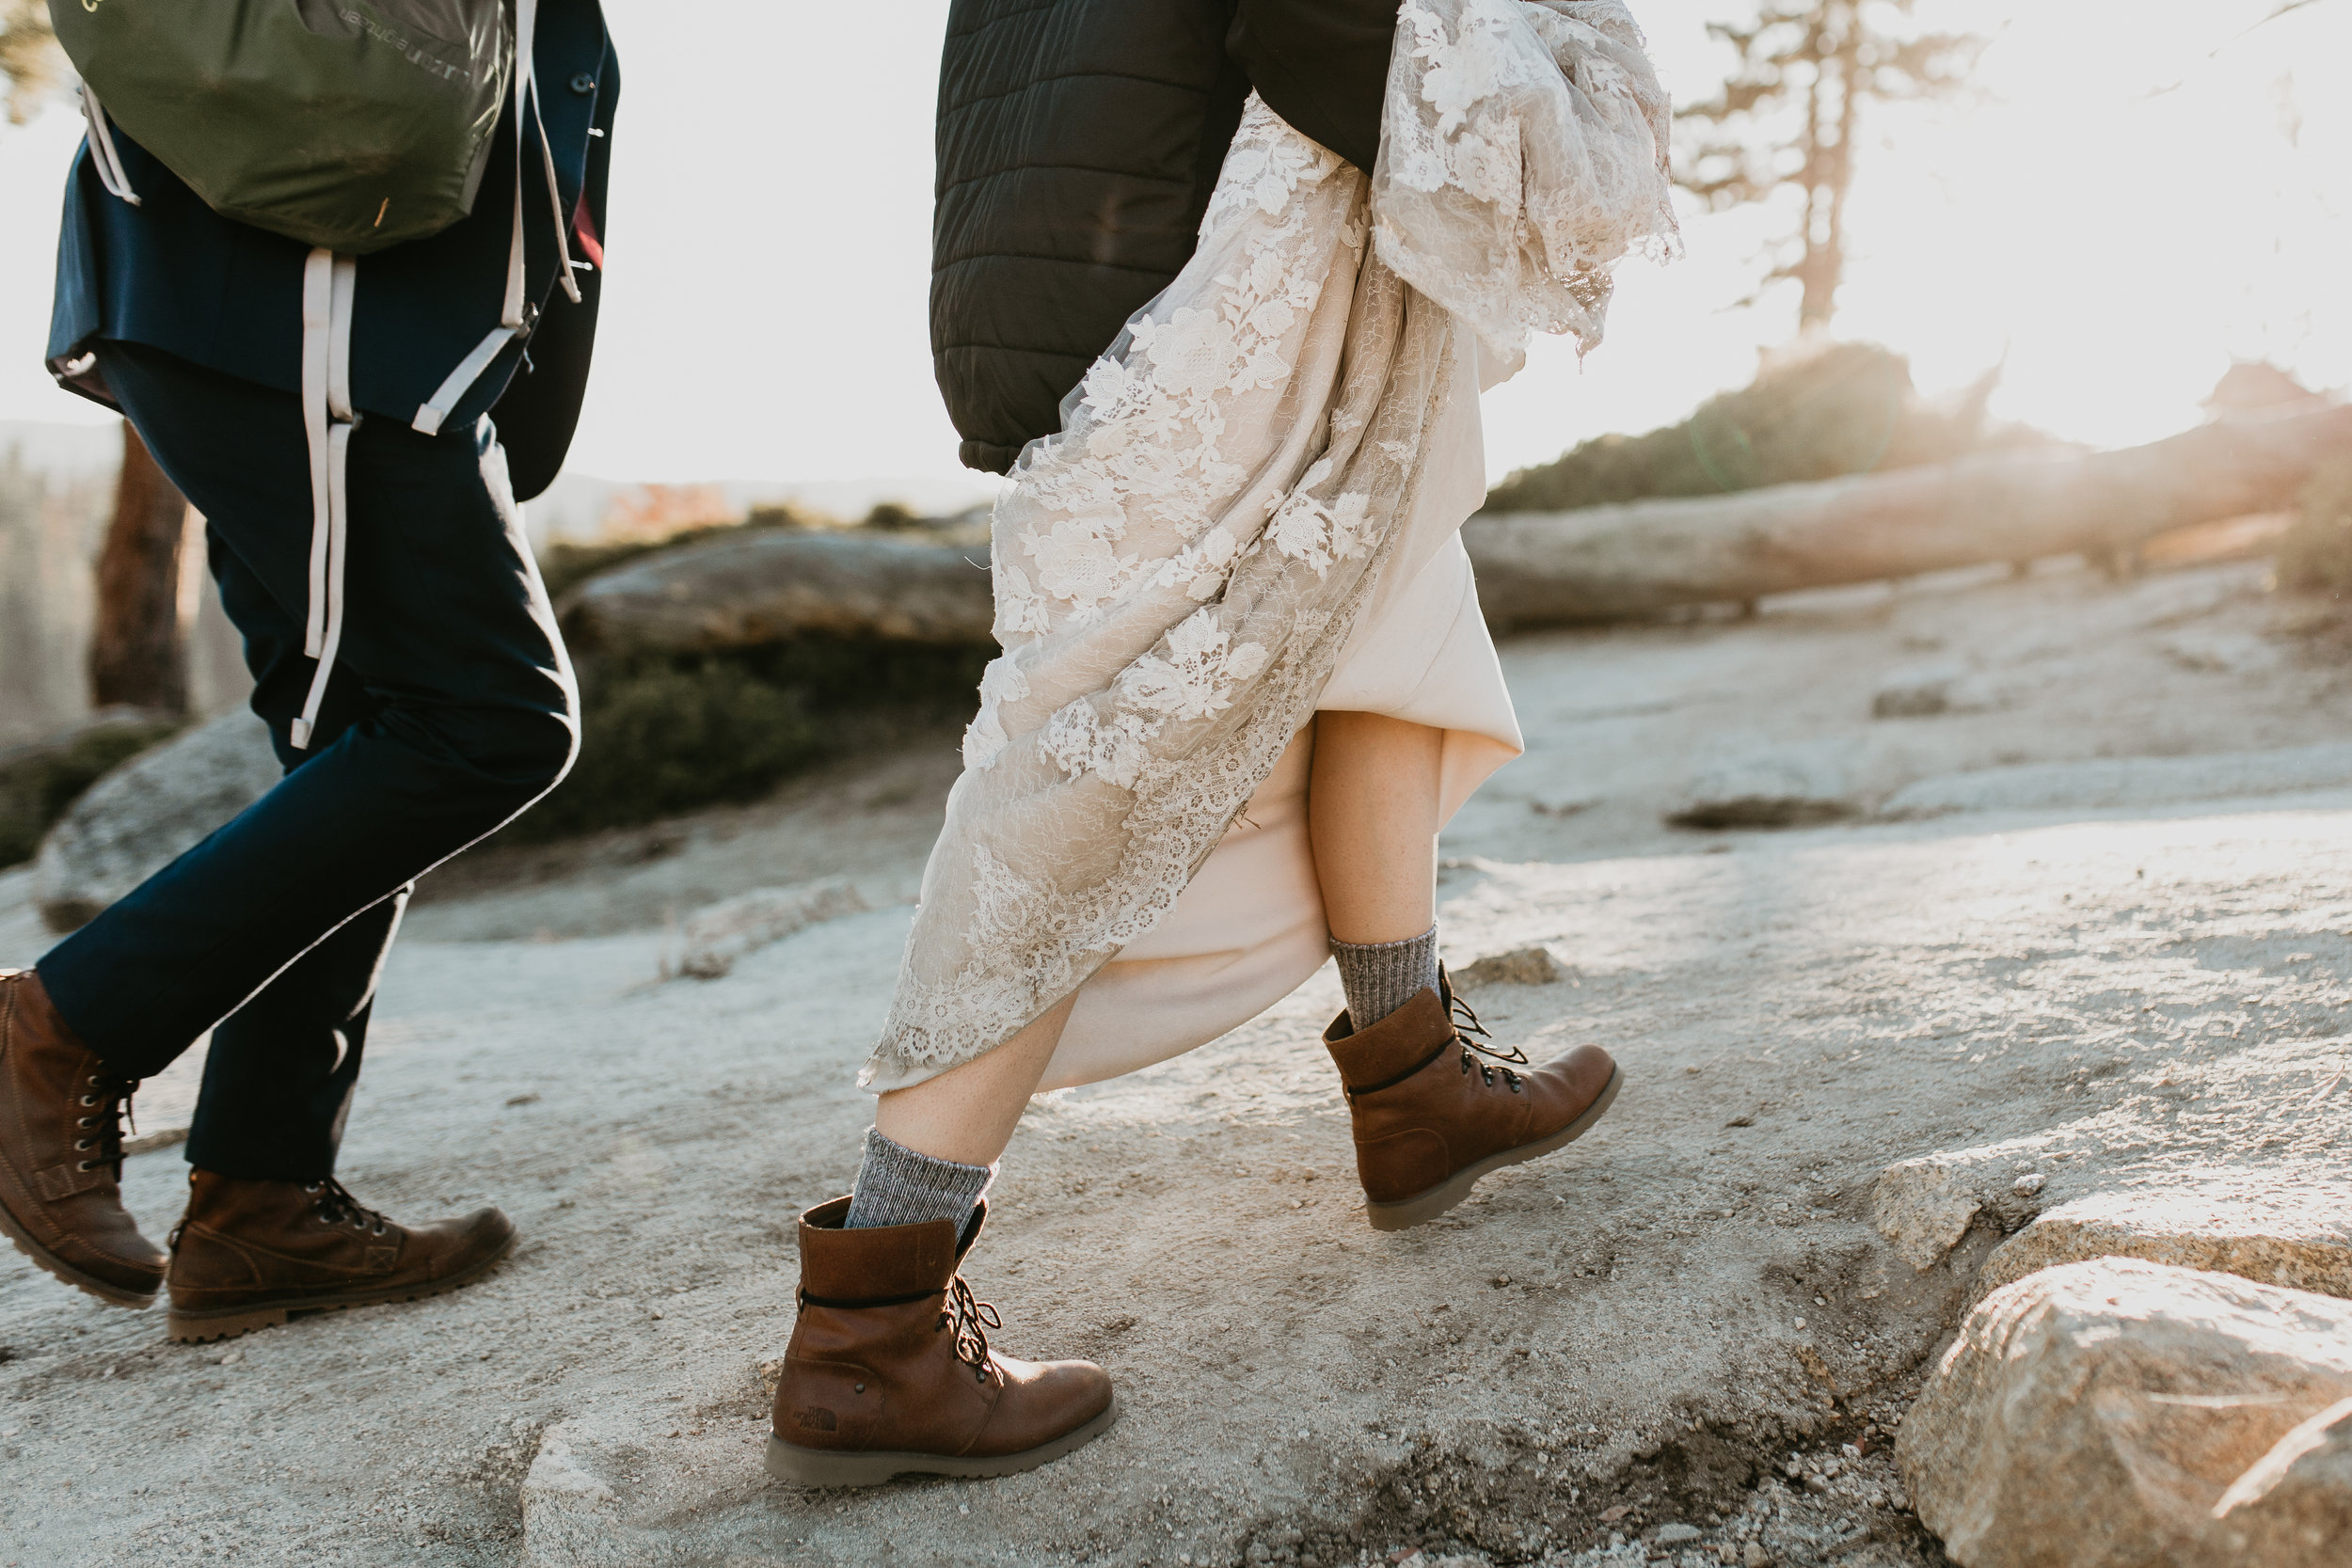 nicole-daacke-photography-intimate-elopement-wedding-yosemite-national-park-california-taft-point-sunset-photos-yosemite-valley-tunnel-view-first-look-sunrise-golden-granite-hiking-adventure-wedding-adventurous-elopement-photographer-89.jpg